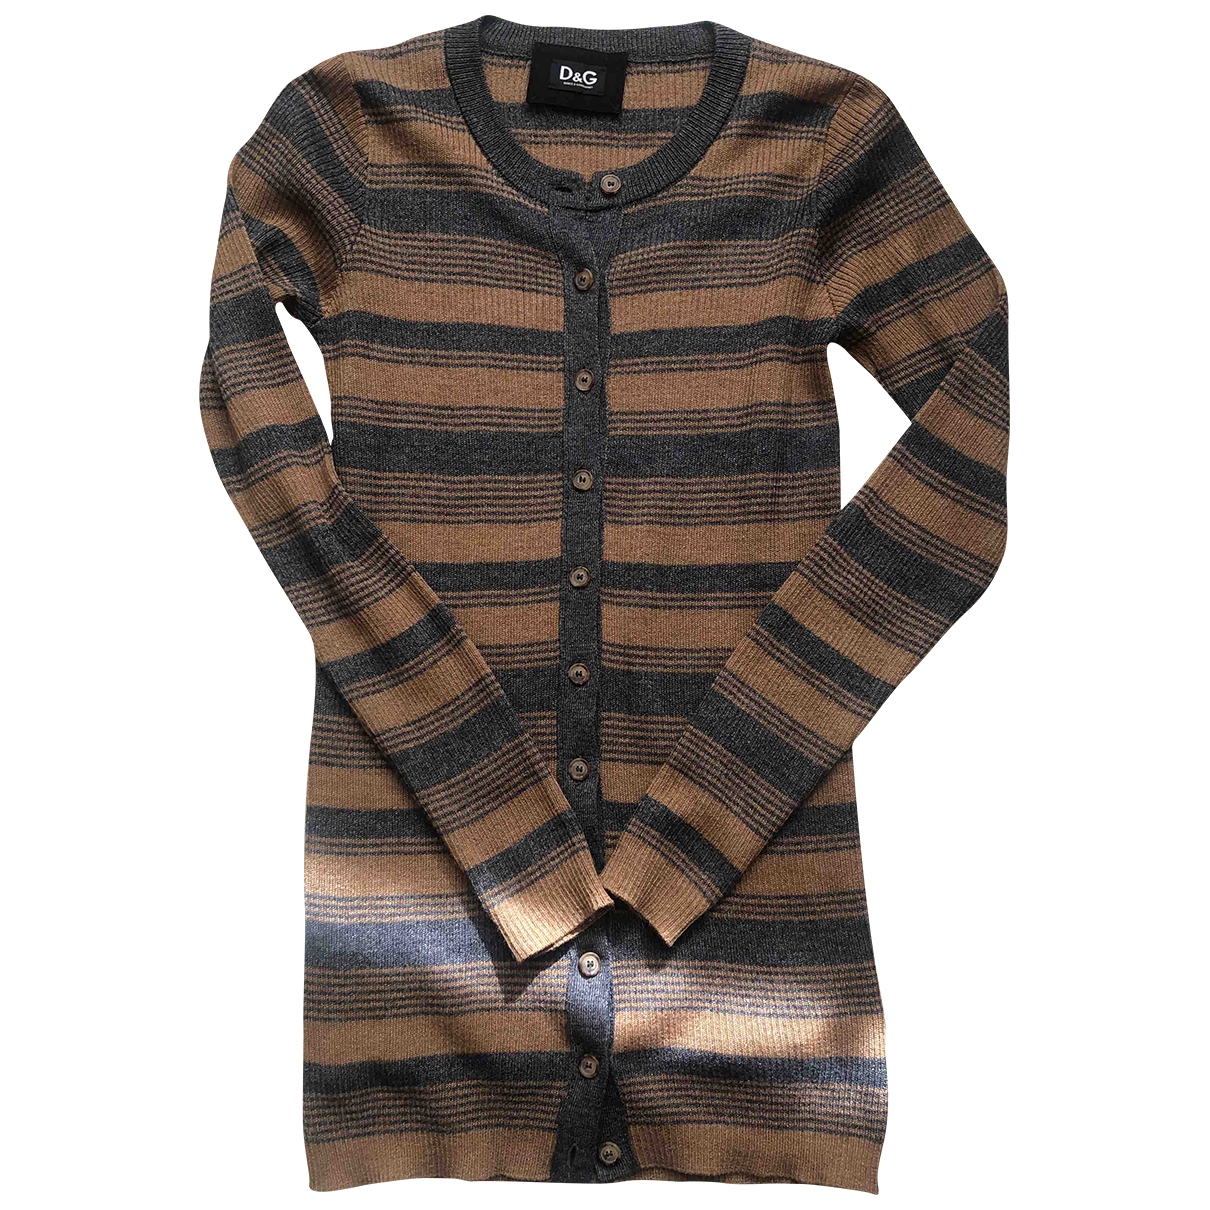 D&g \N Multicolour Knitwear for Women S International